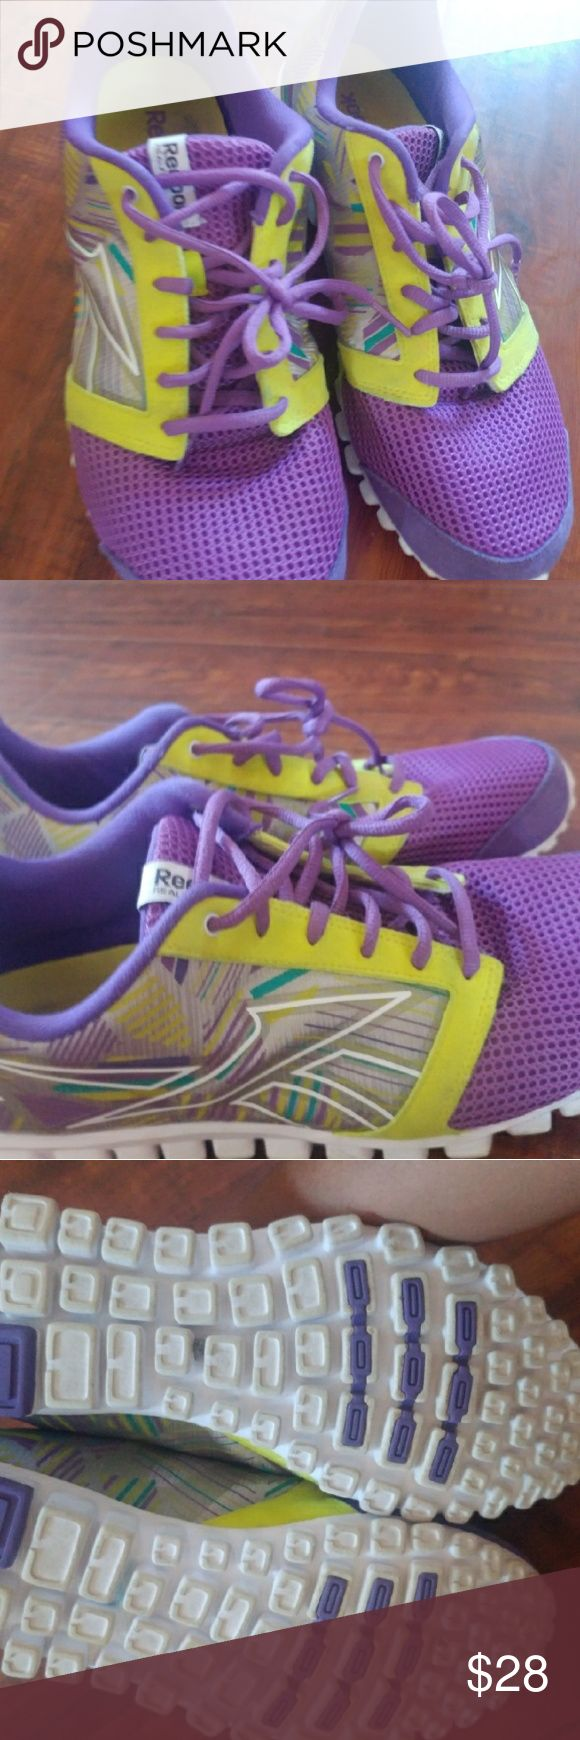 Reebock runing shoes Like new condition Reebok Shoes Sneakers